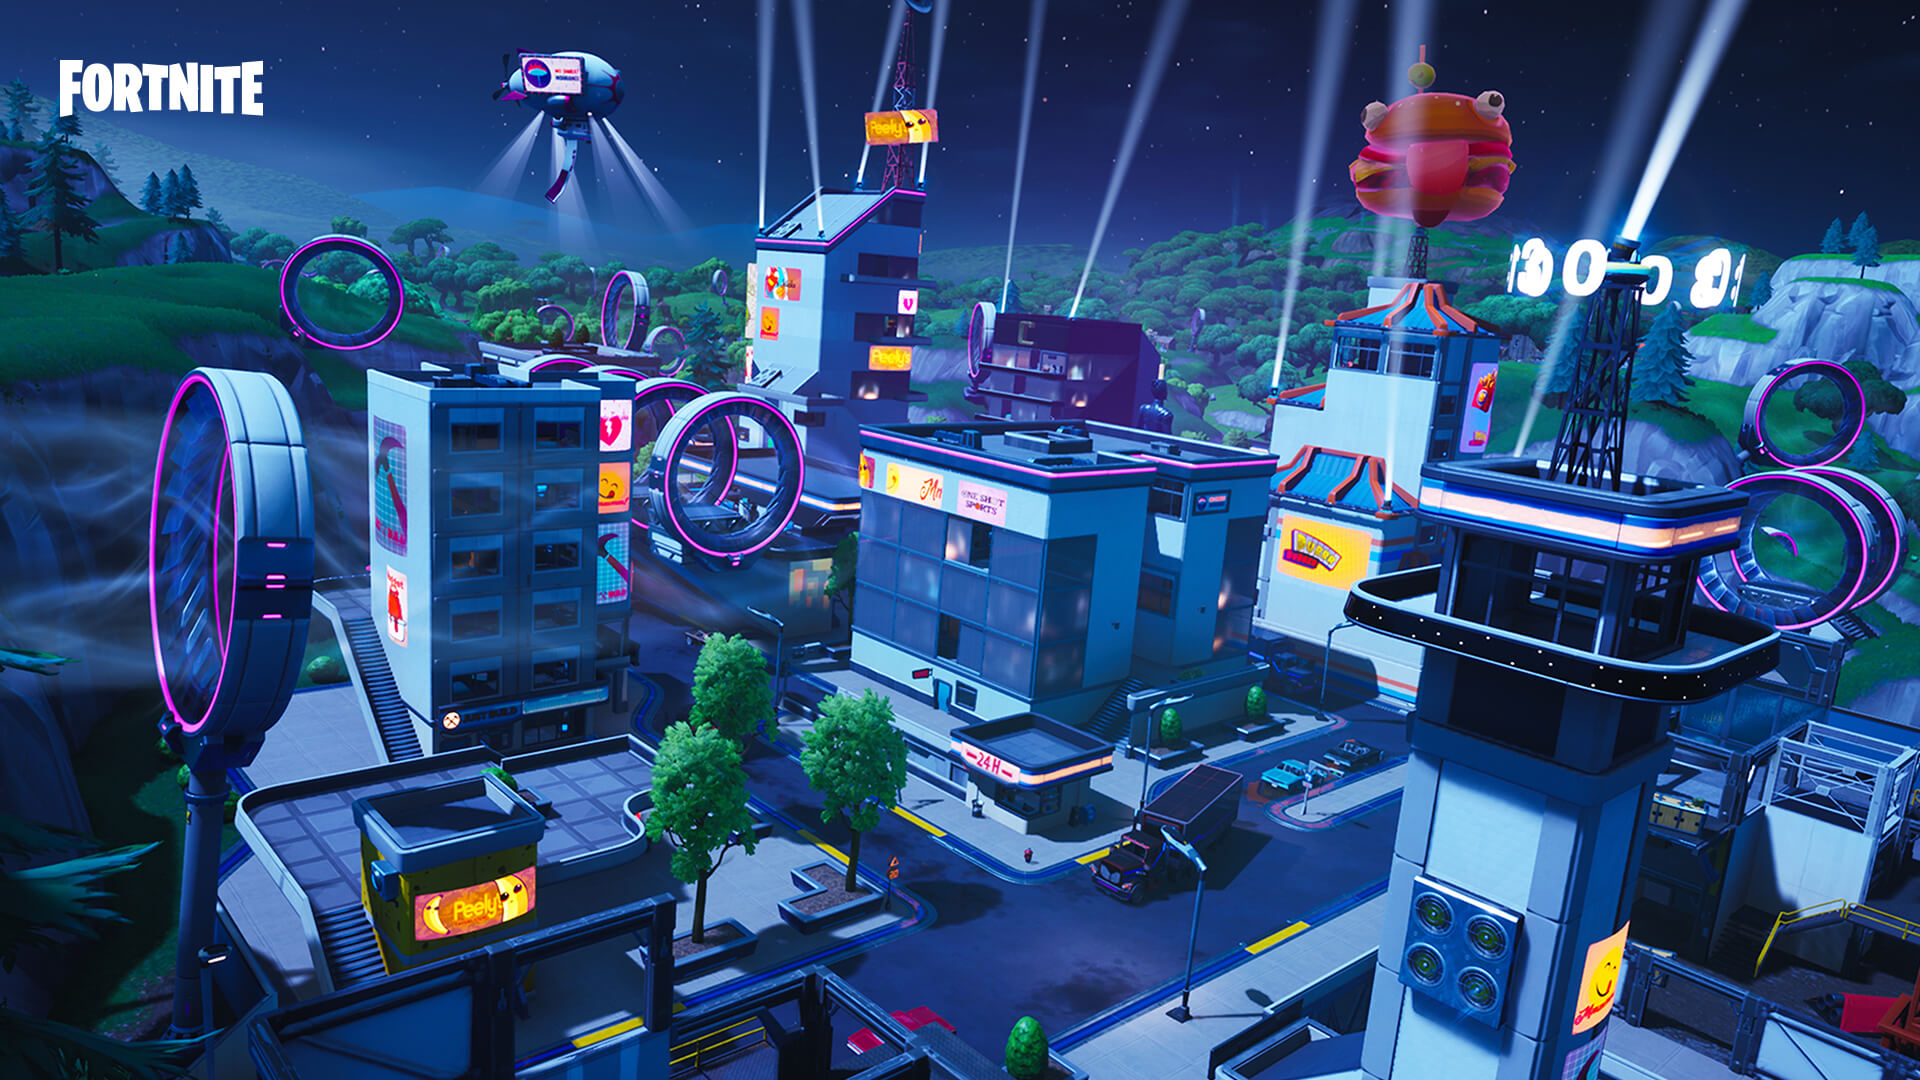 Fortnite season 9 kicks off with Slipstreams, new locations and more